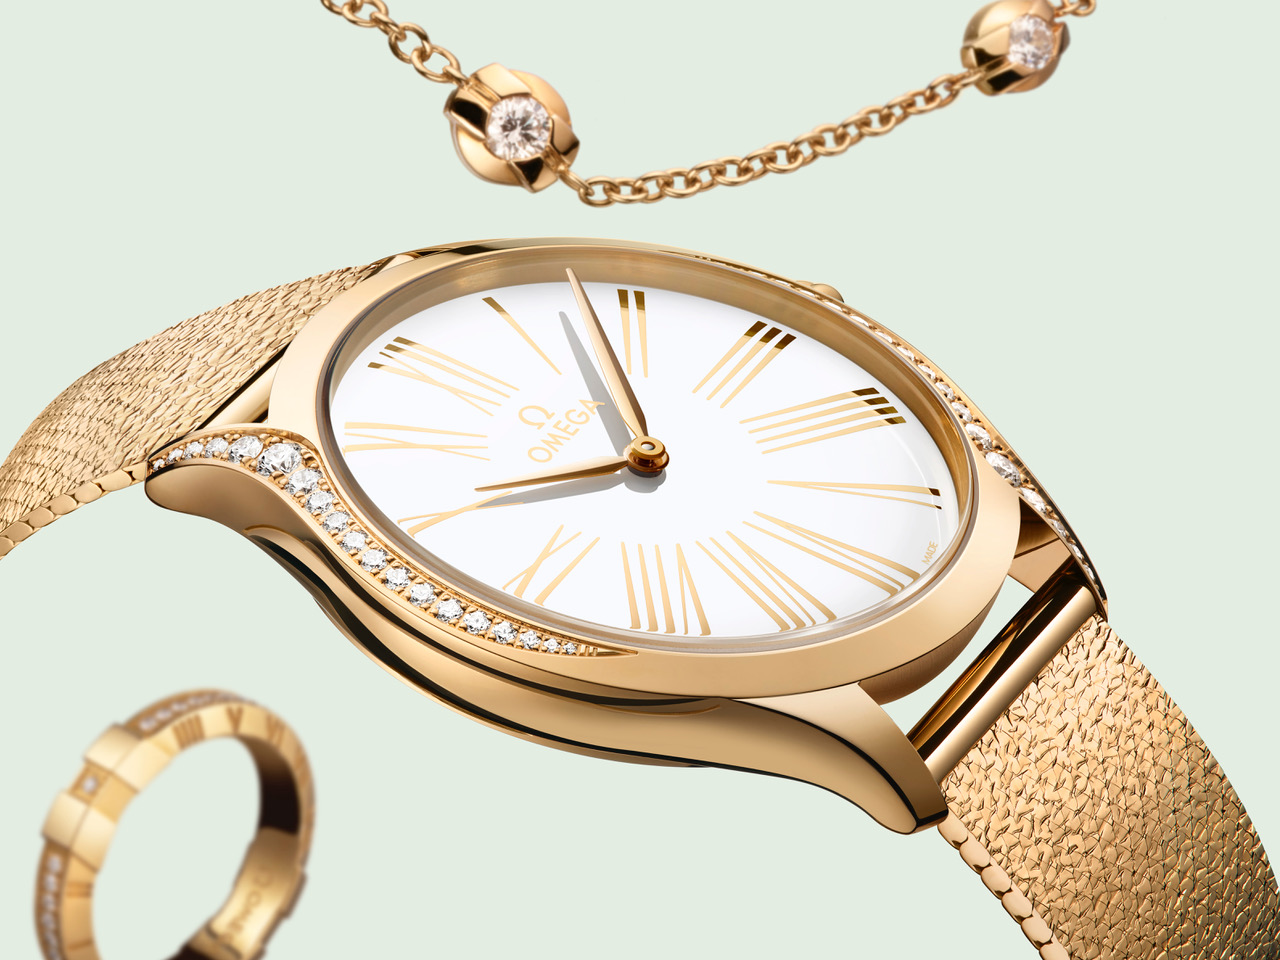 Omega Trésor Britta Rossander Cars and Watches for Ladies